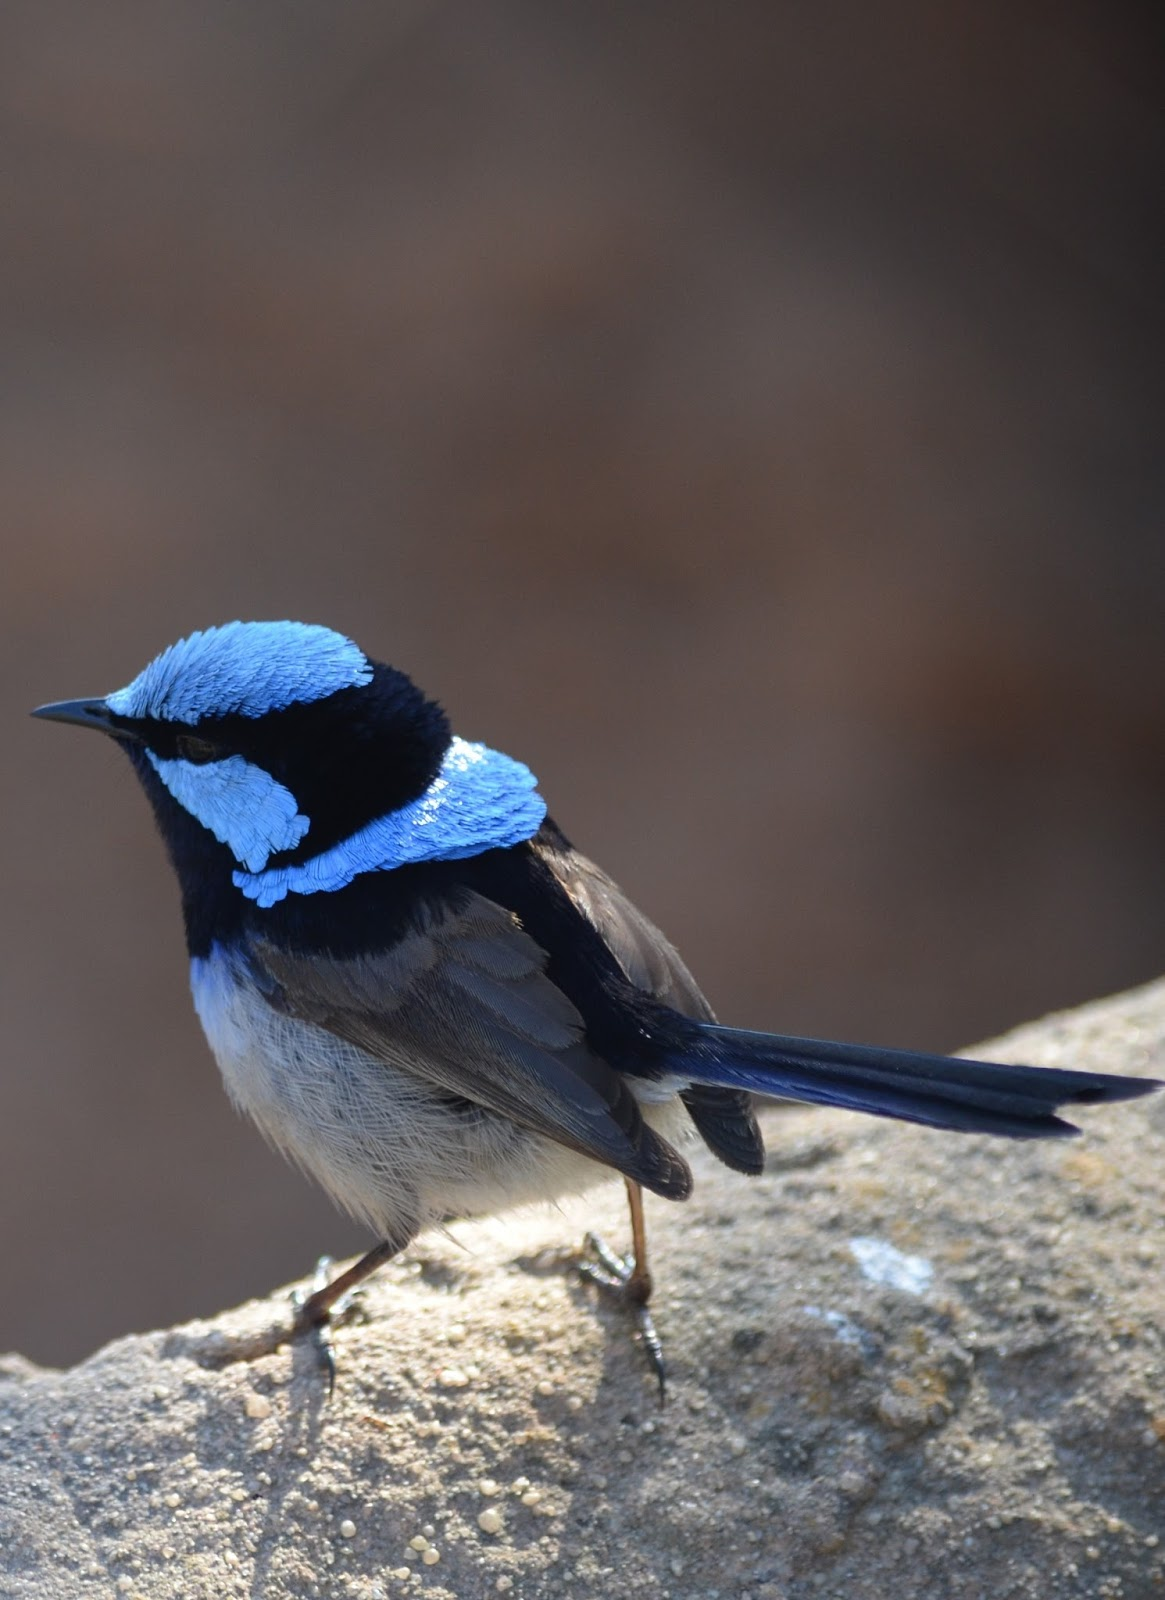 Photo of a blue wren bird.